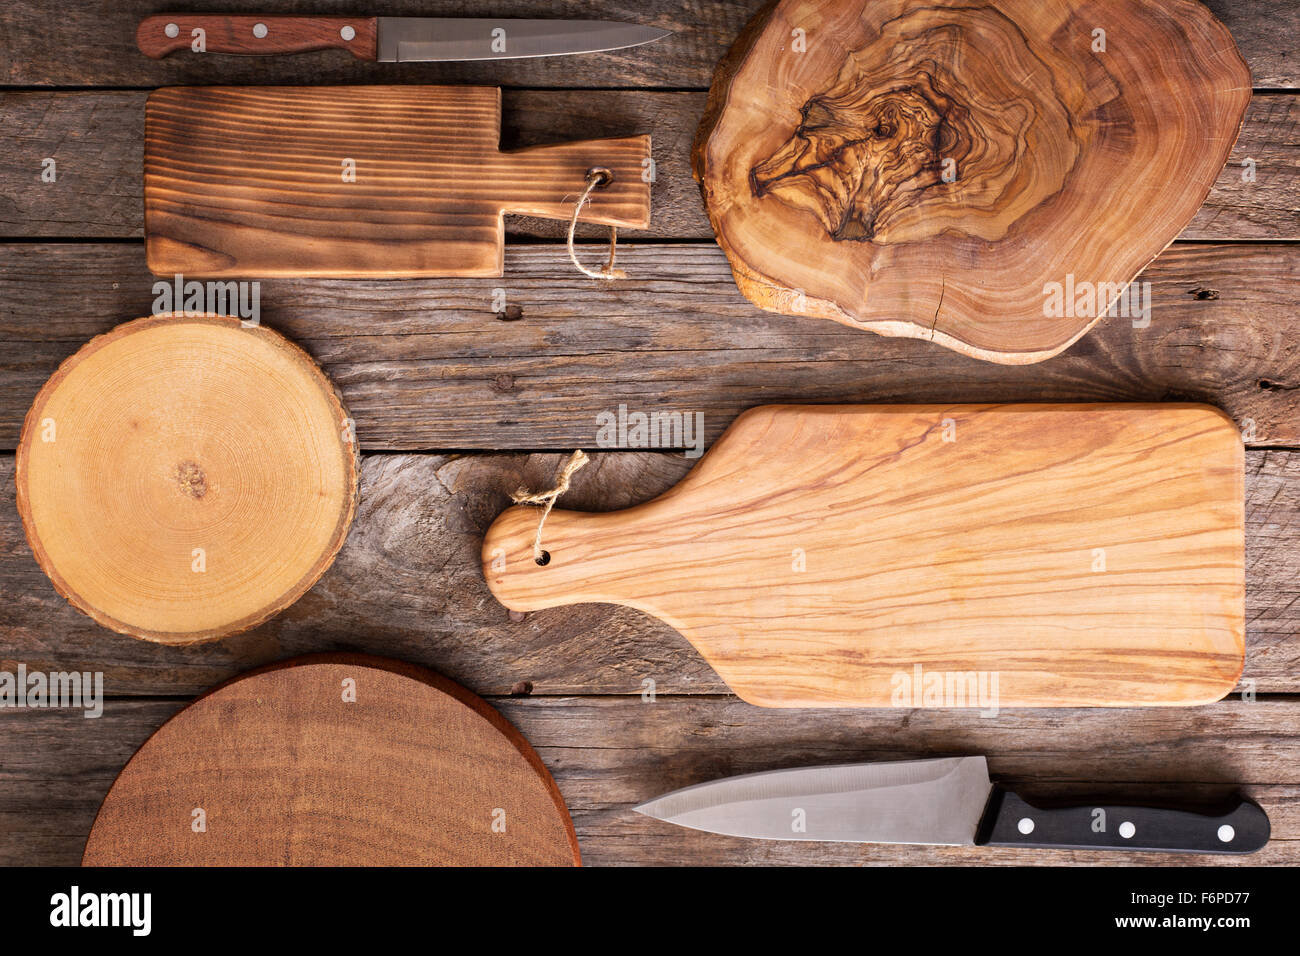 Wooden background with plenty of cutting boards and knifes - Stock Image